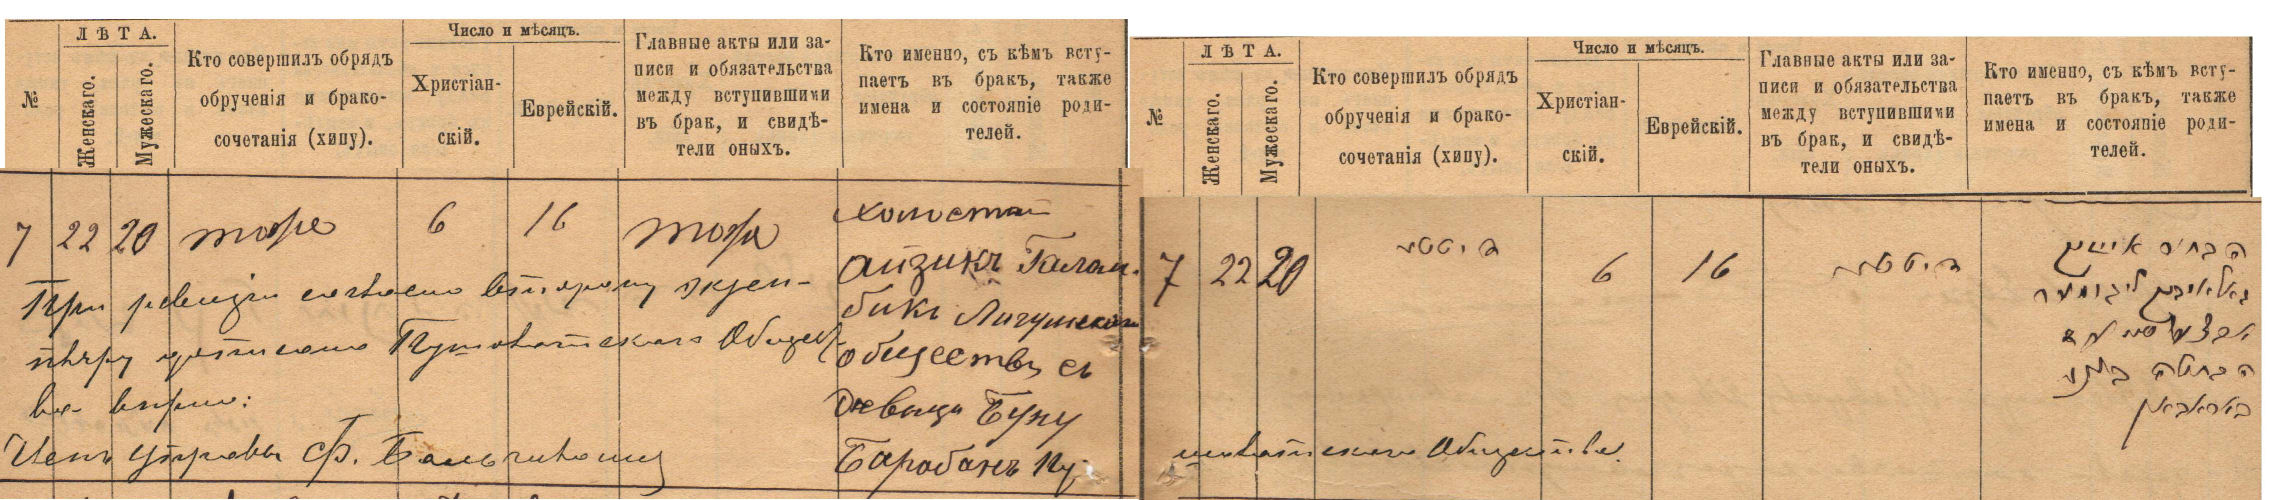 Lithuania Vital Records Database